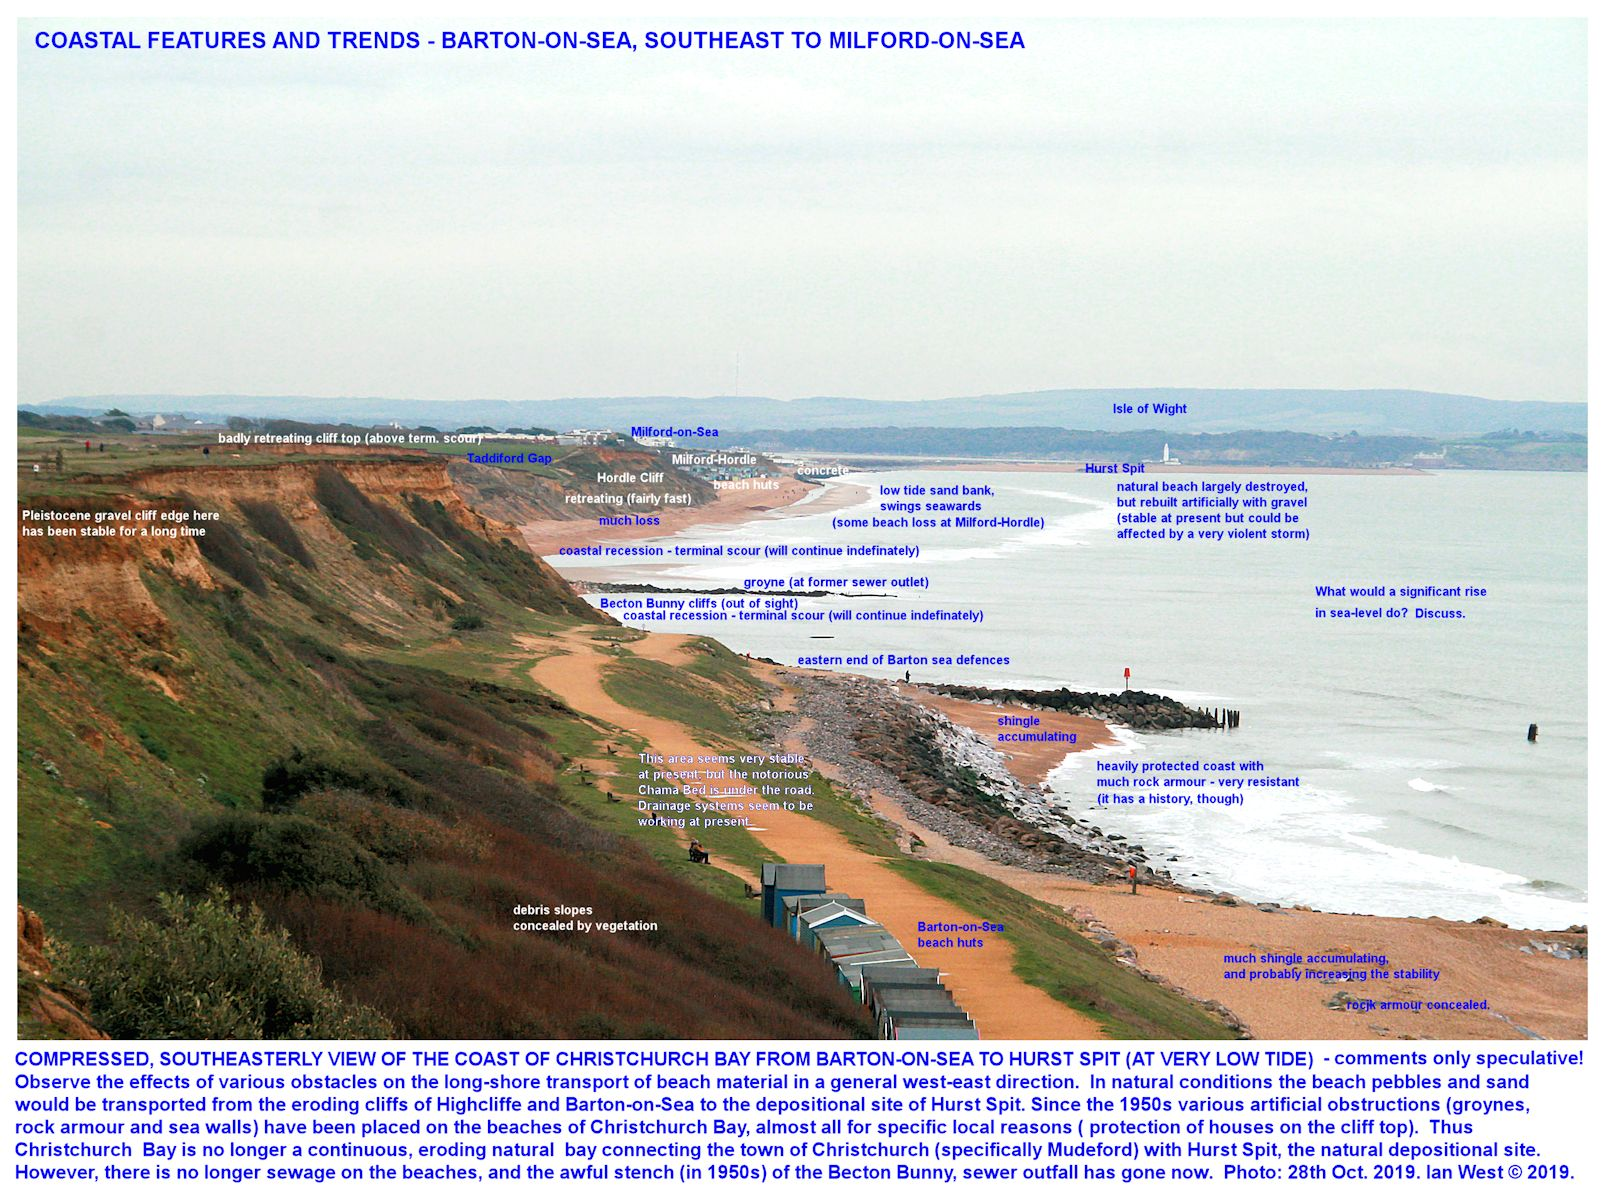 An view southeast of part of Barton-on-Sea, Hampshire, and towards Hurst Spit, with notes on the coastal erosion situation as in late 2019, Ian West